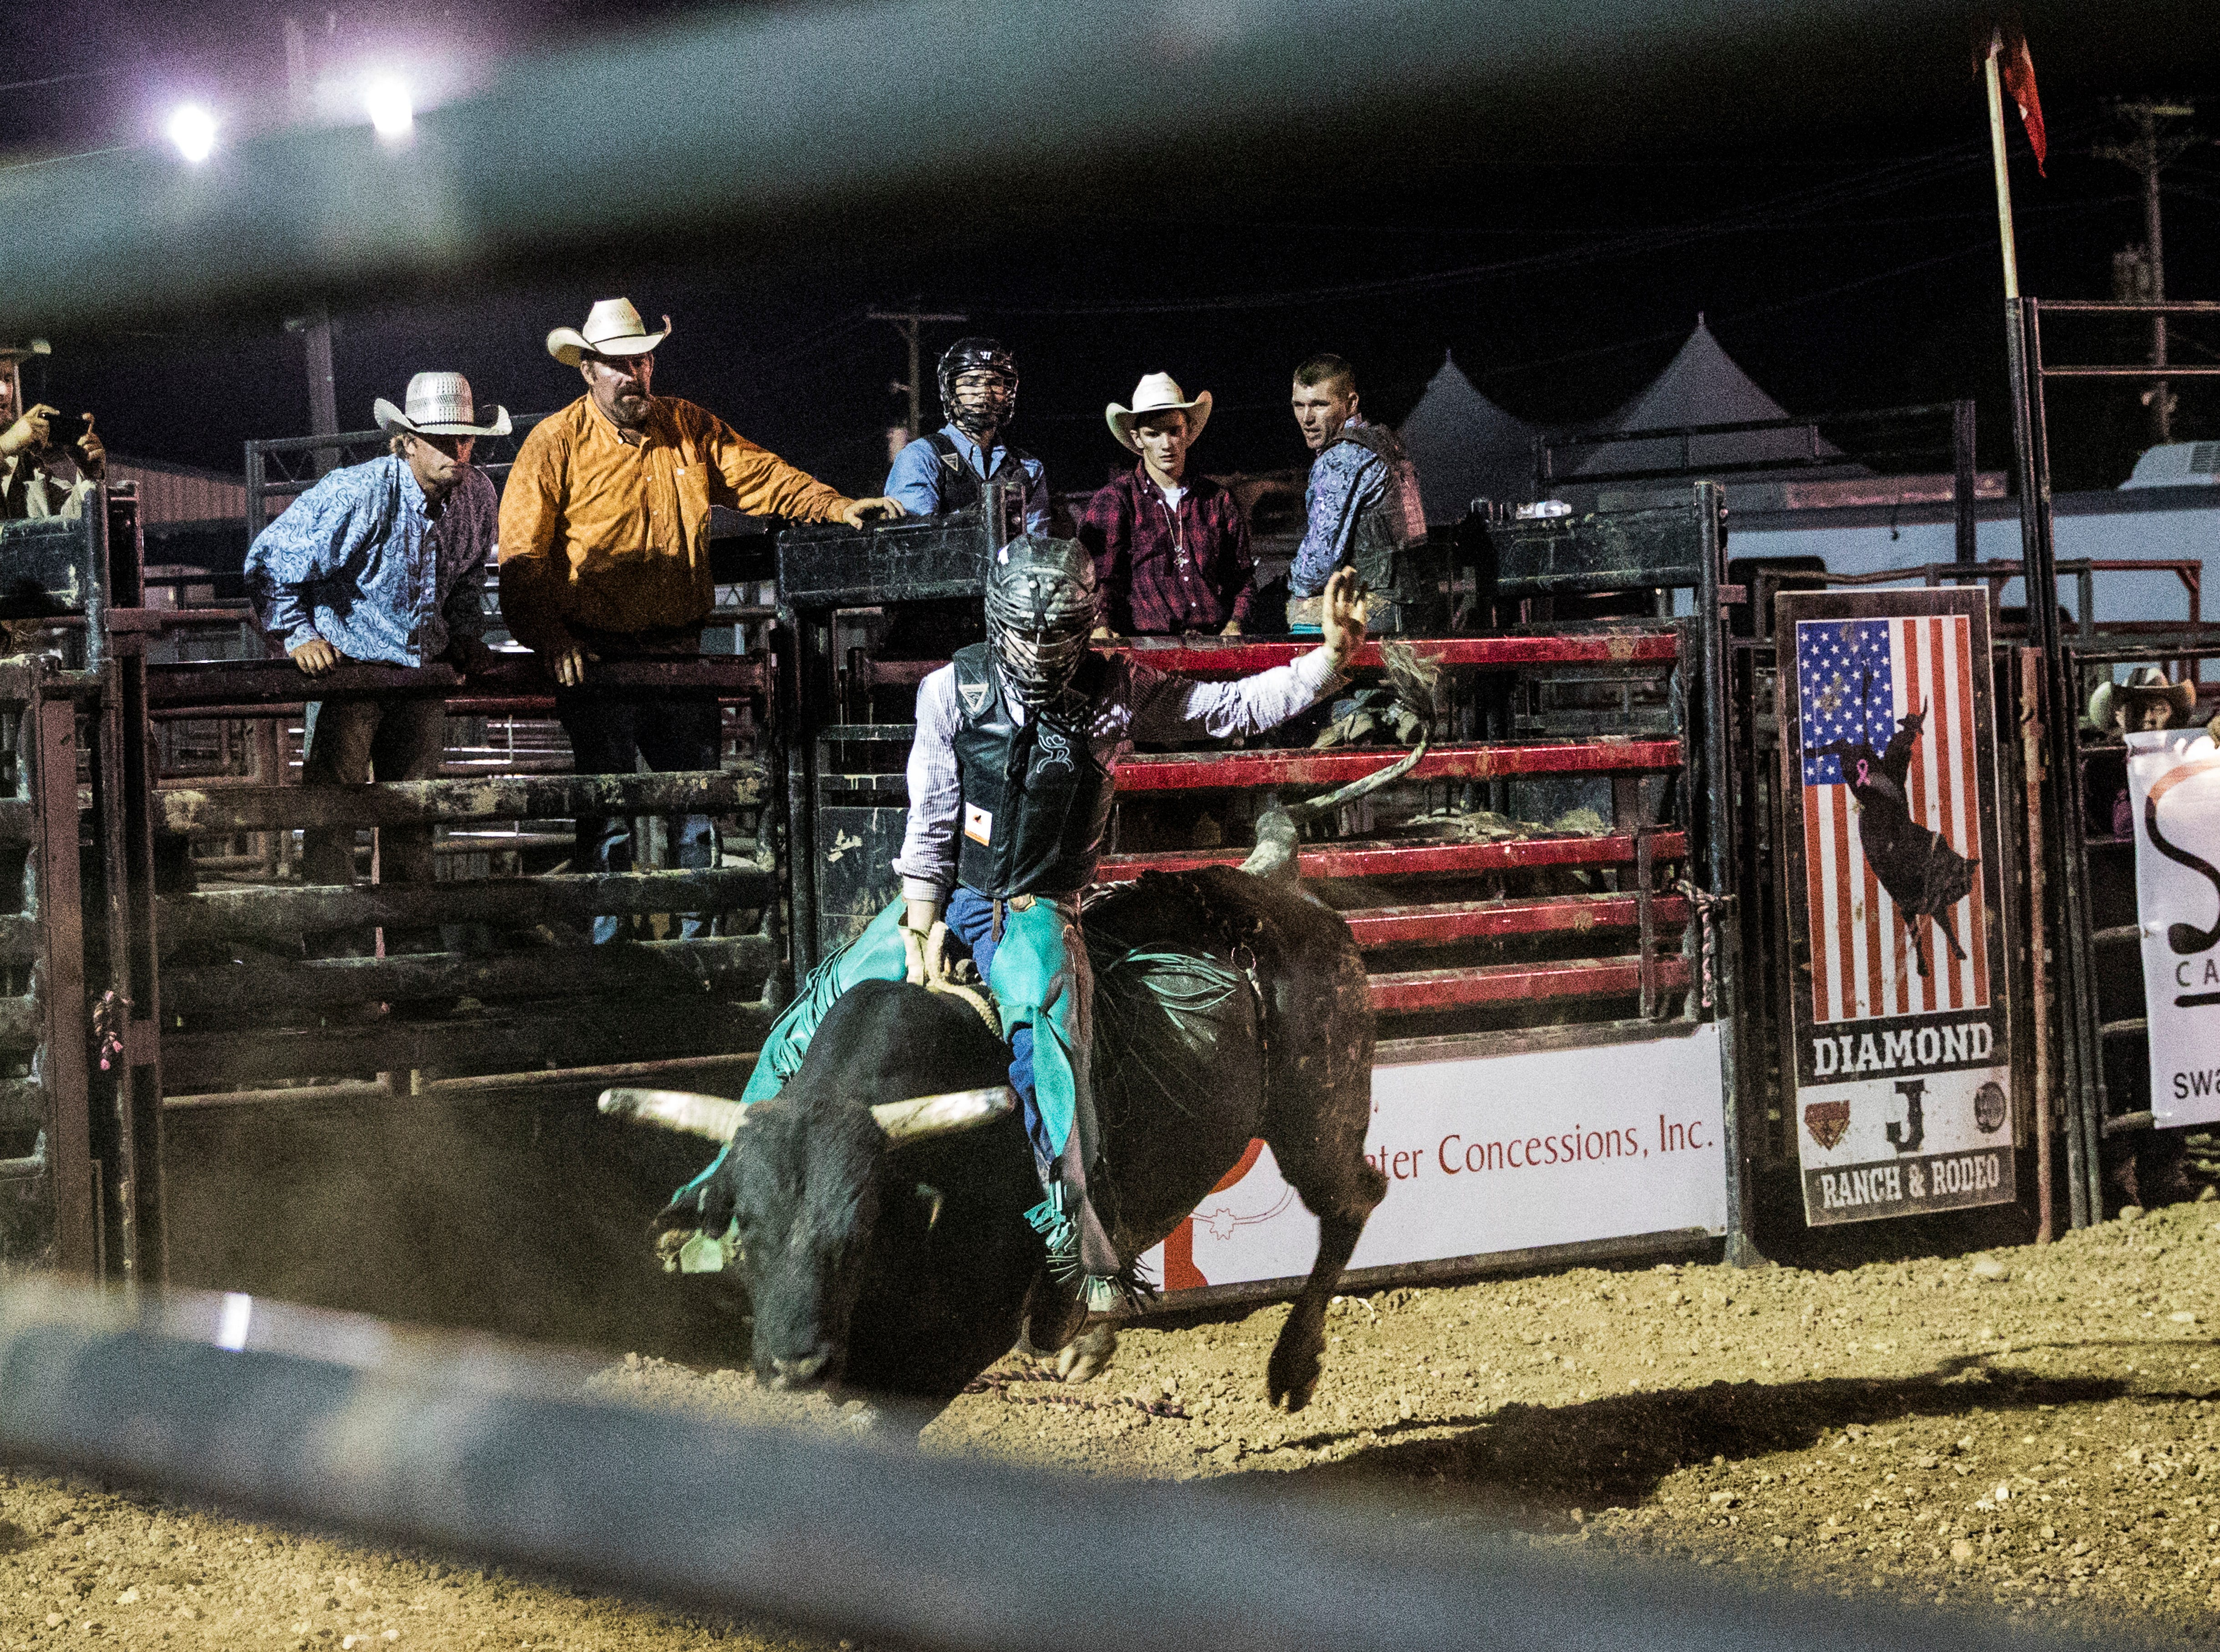 Highlights of the 2018 Rodeo Show at the Ross County Fair in Chillicothe, Ohio.